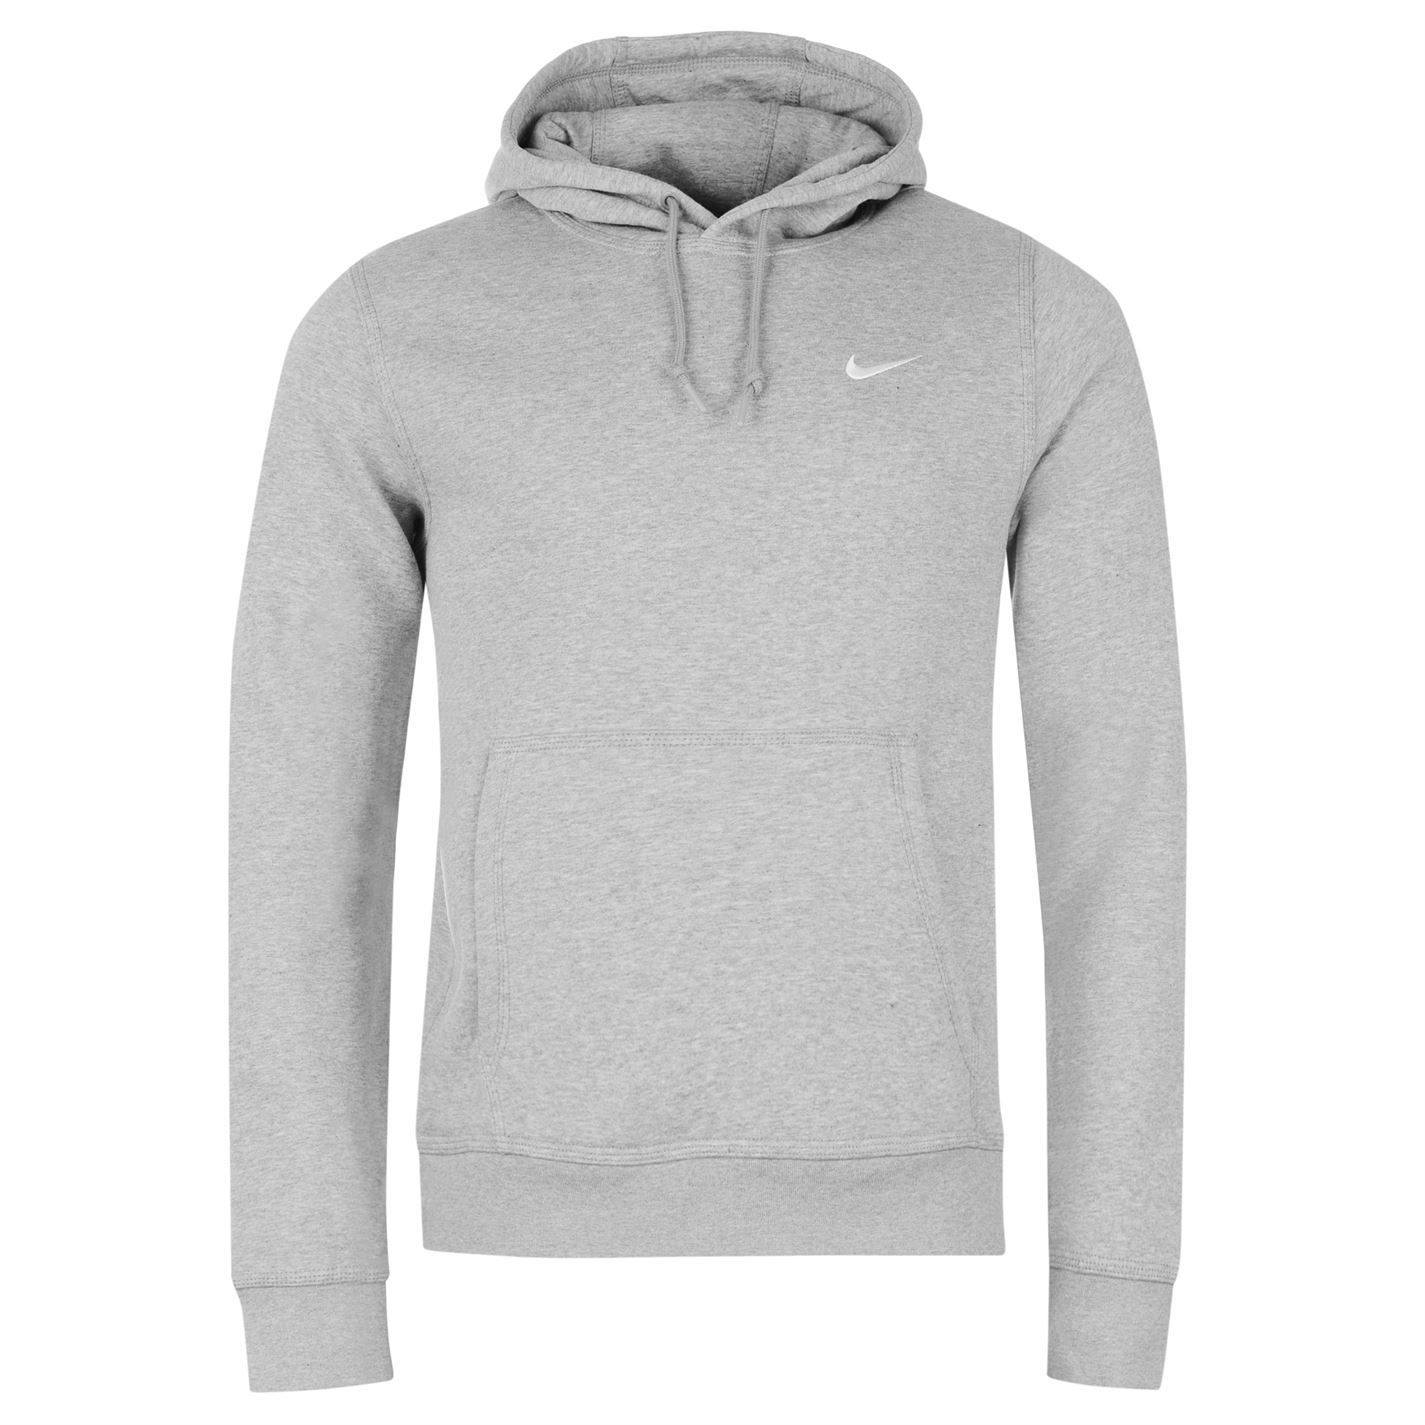 Nike-Fundamentals-Fleece-Lined-Pullover-Hoody-Mens-OTH-Hoodie-Sweatshirt-Sweater thumbnail 13